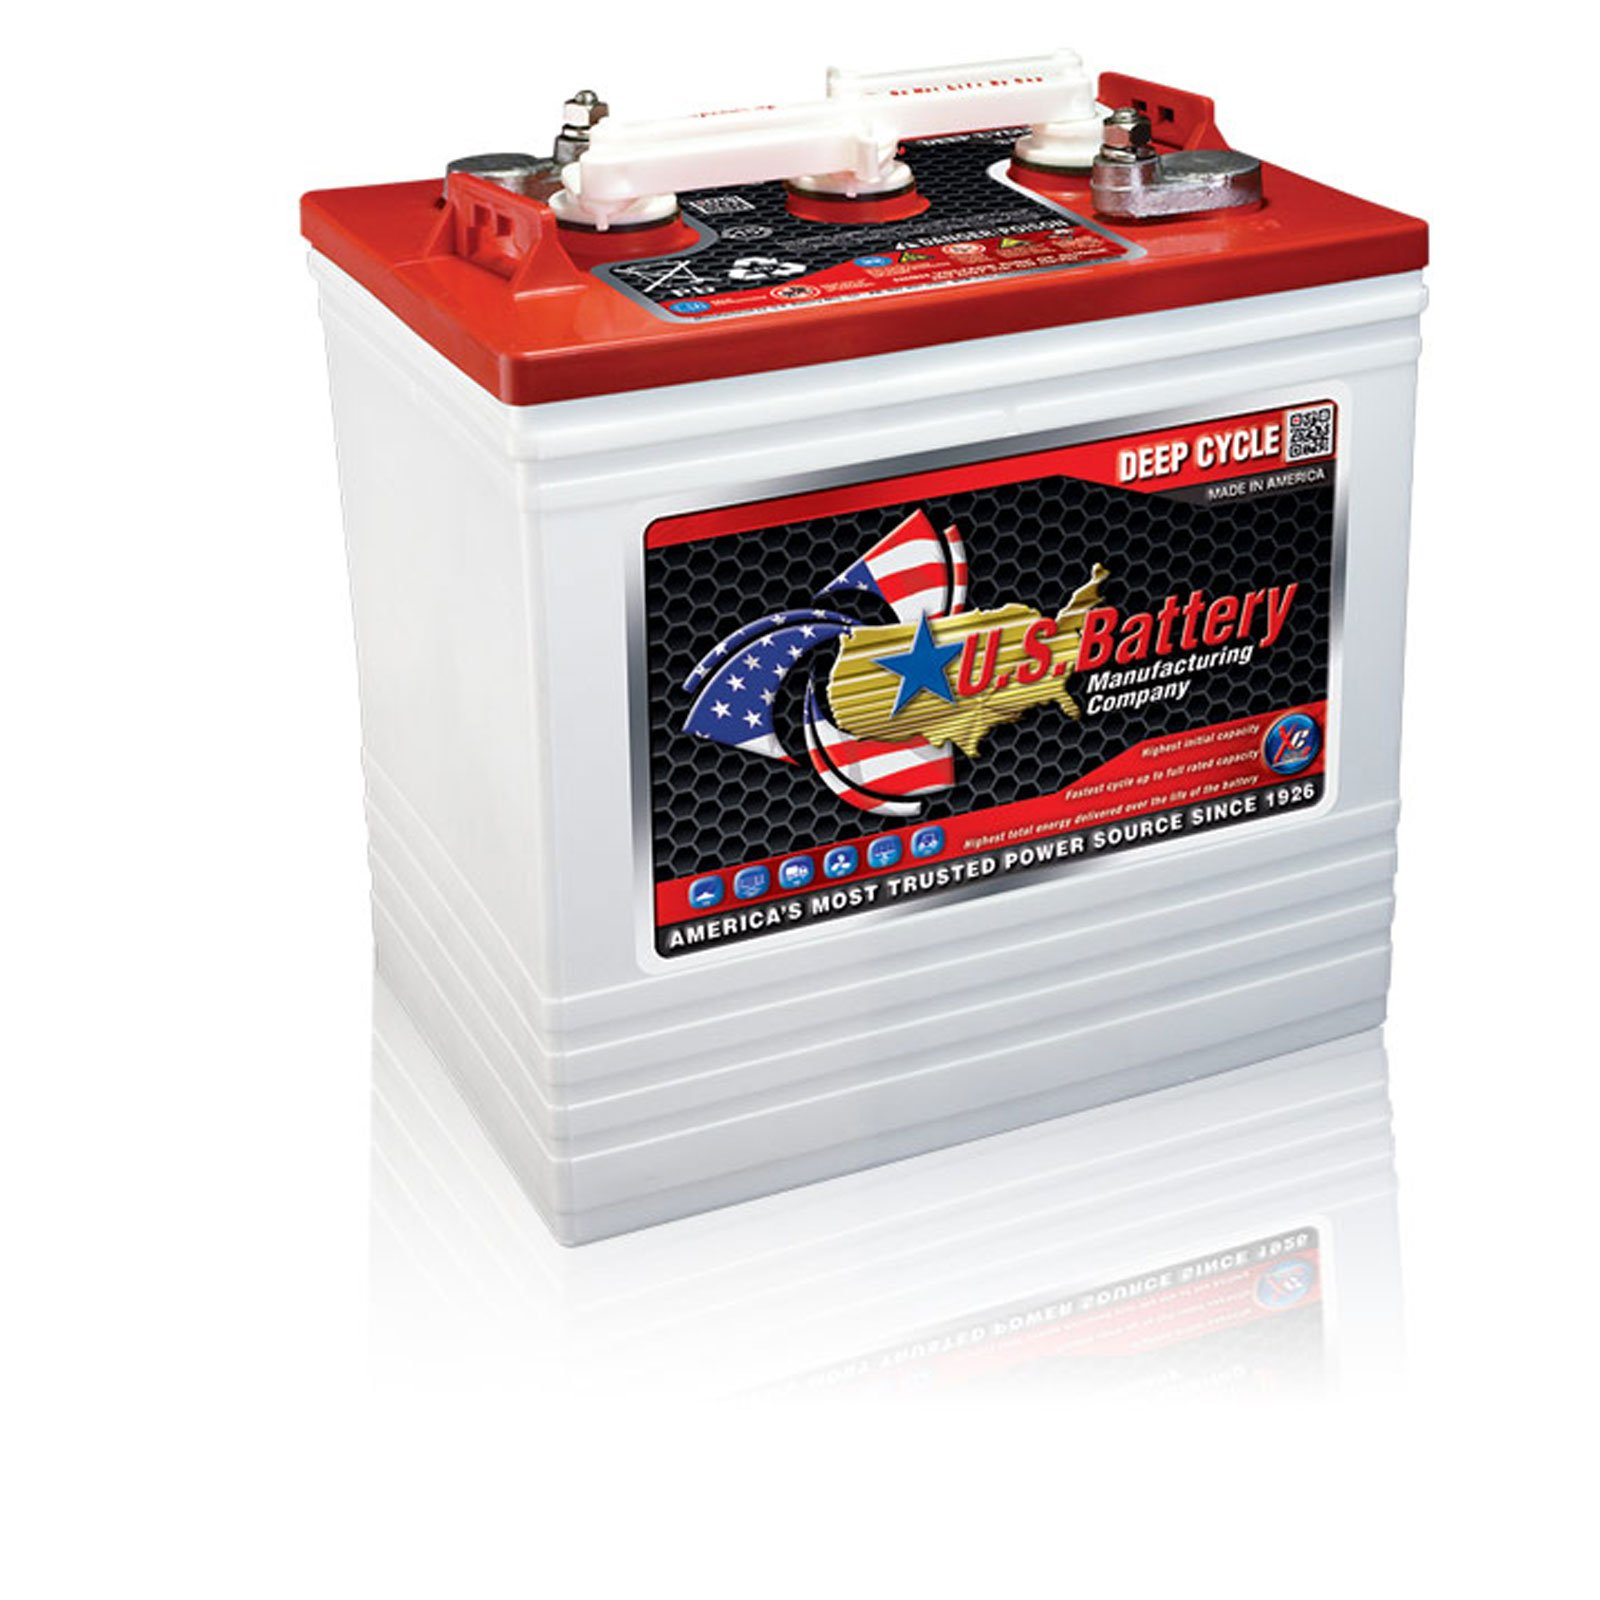 U.S. GC2 US2200XC2 6V 232A Deep Cycle Flooded Acid Battery